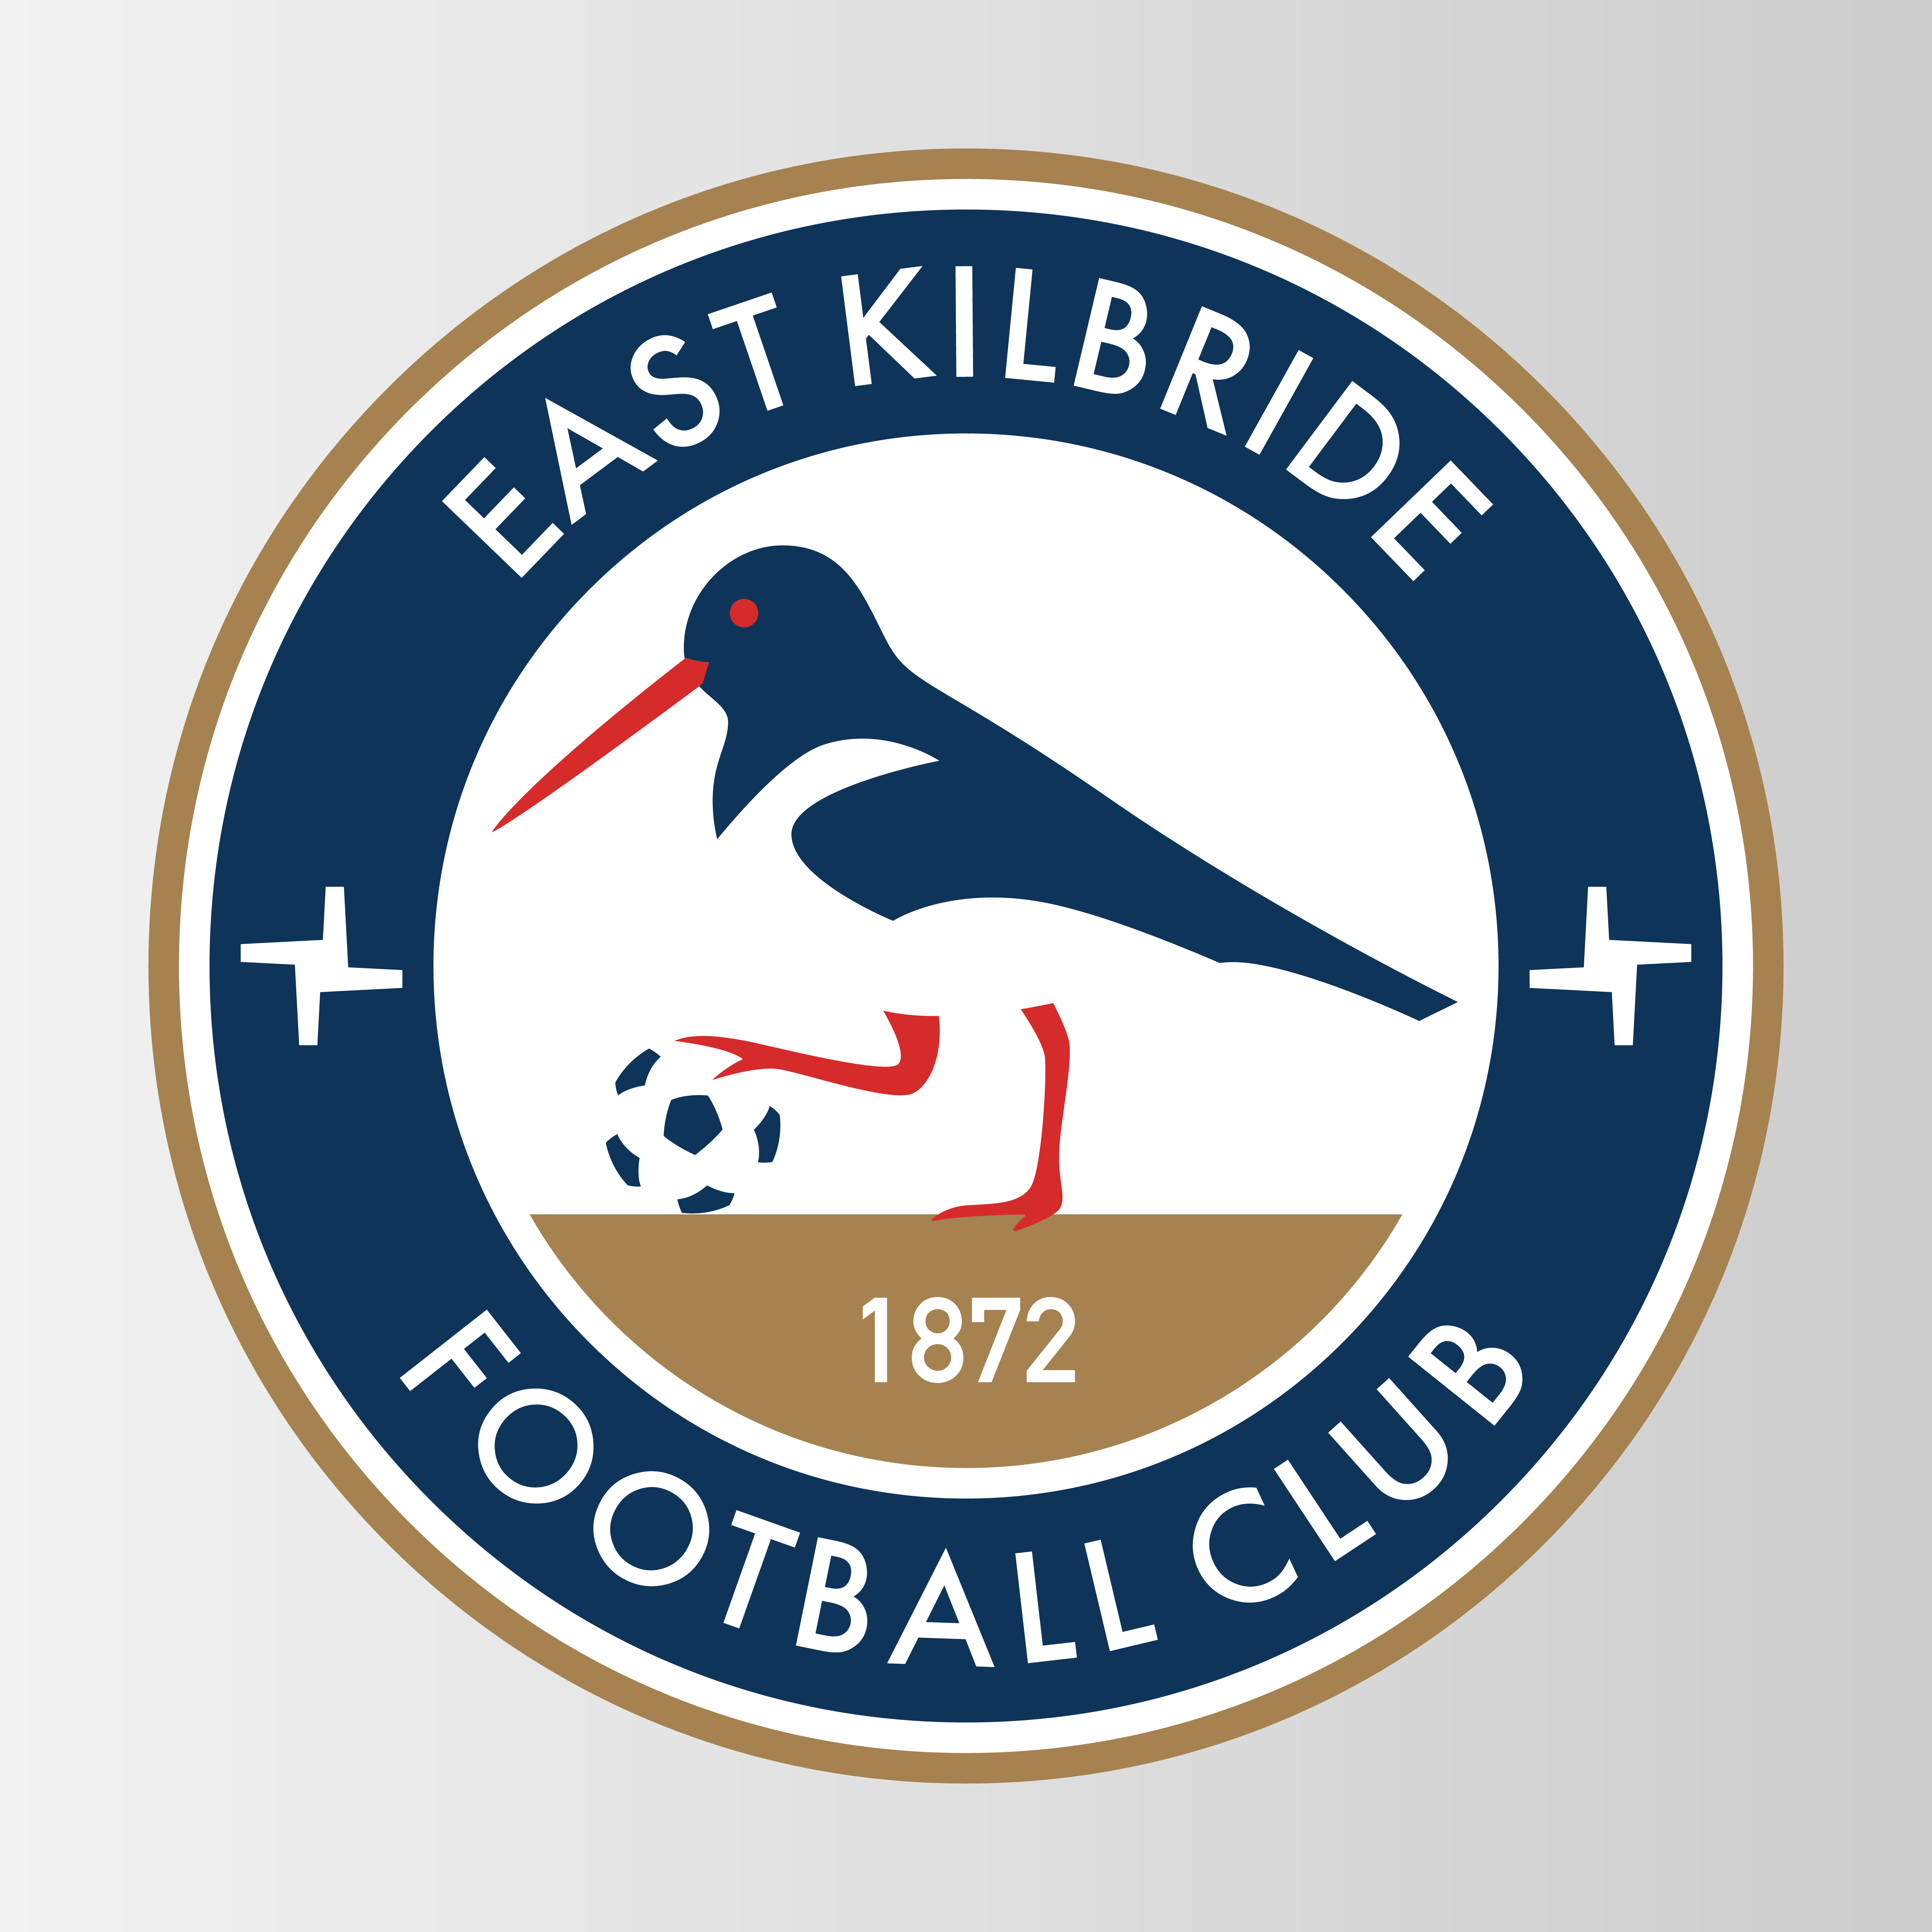 https://www.designfootball.com/images/joomgallery/originals/football_crests_8/east_kilbride_fc_20190414_1715129504.png